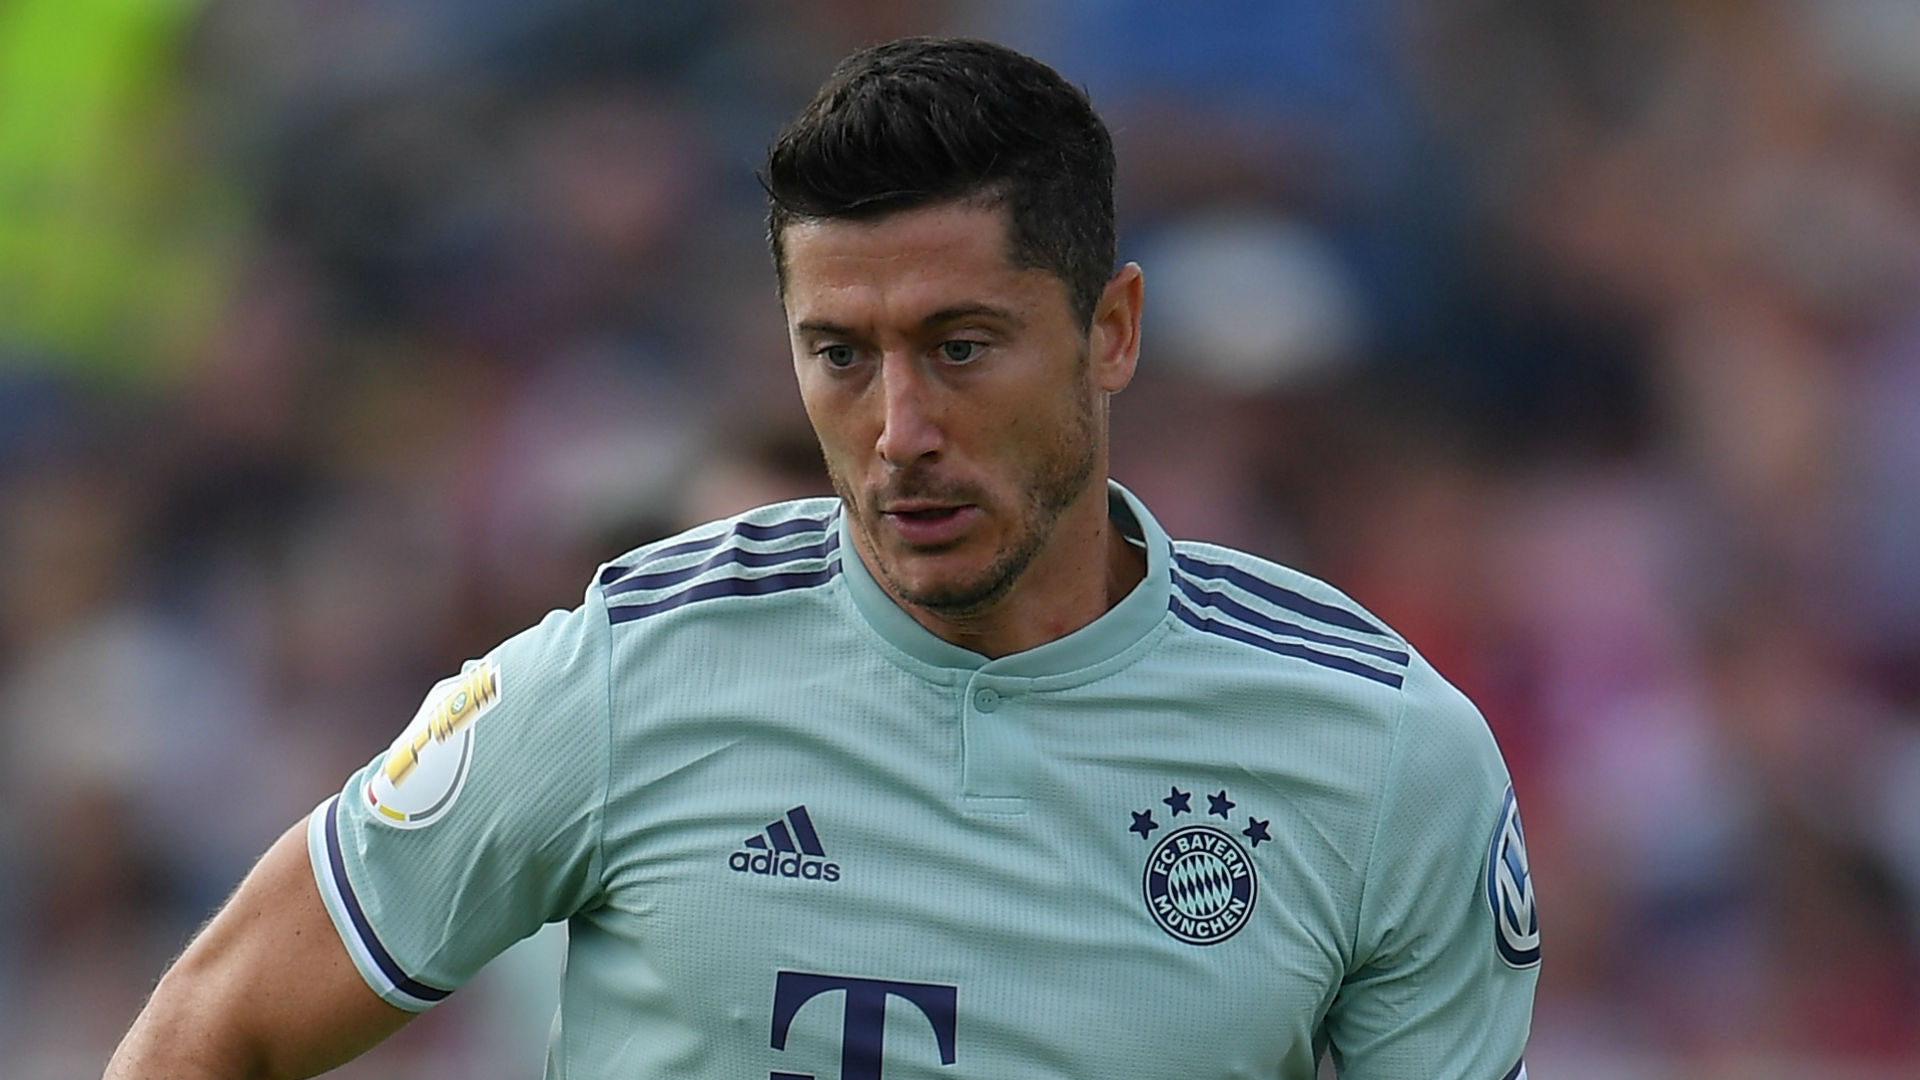 Robert Lewandowski: They made me want to leave Bayern this summer